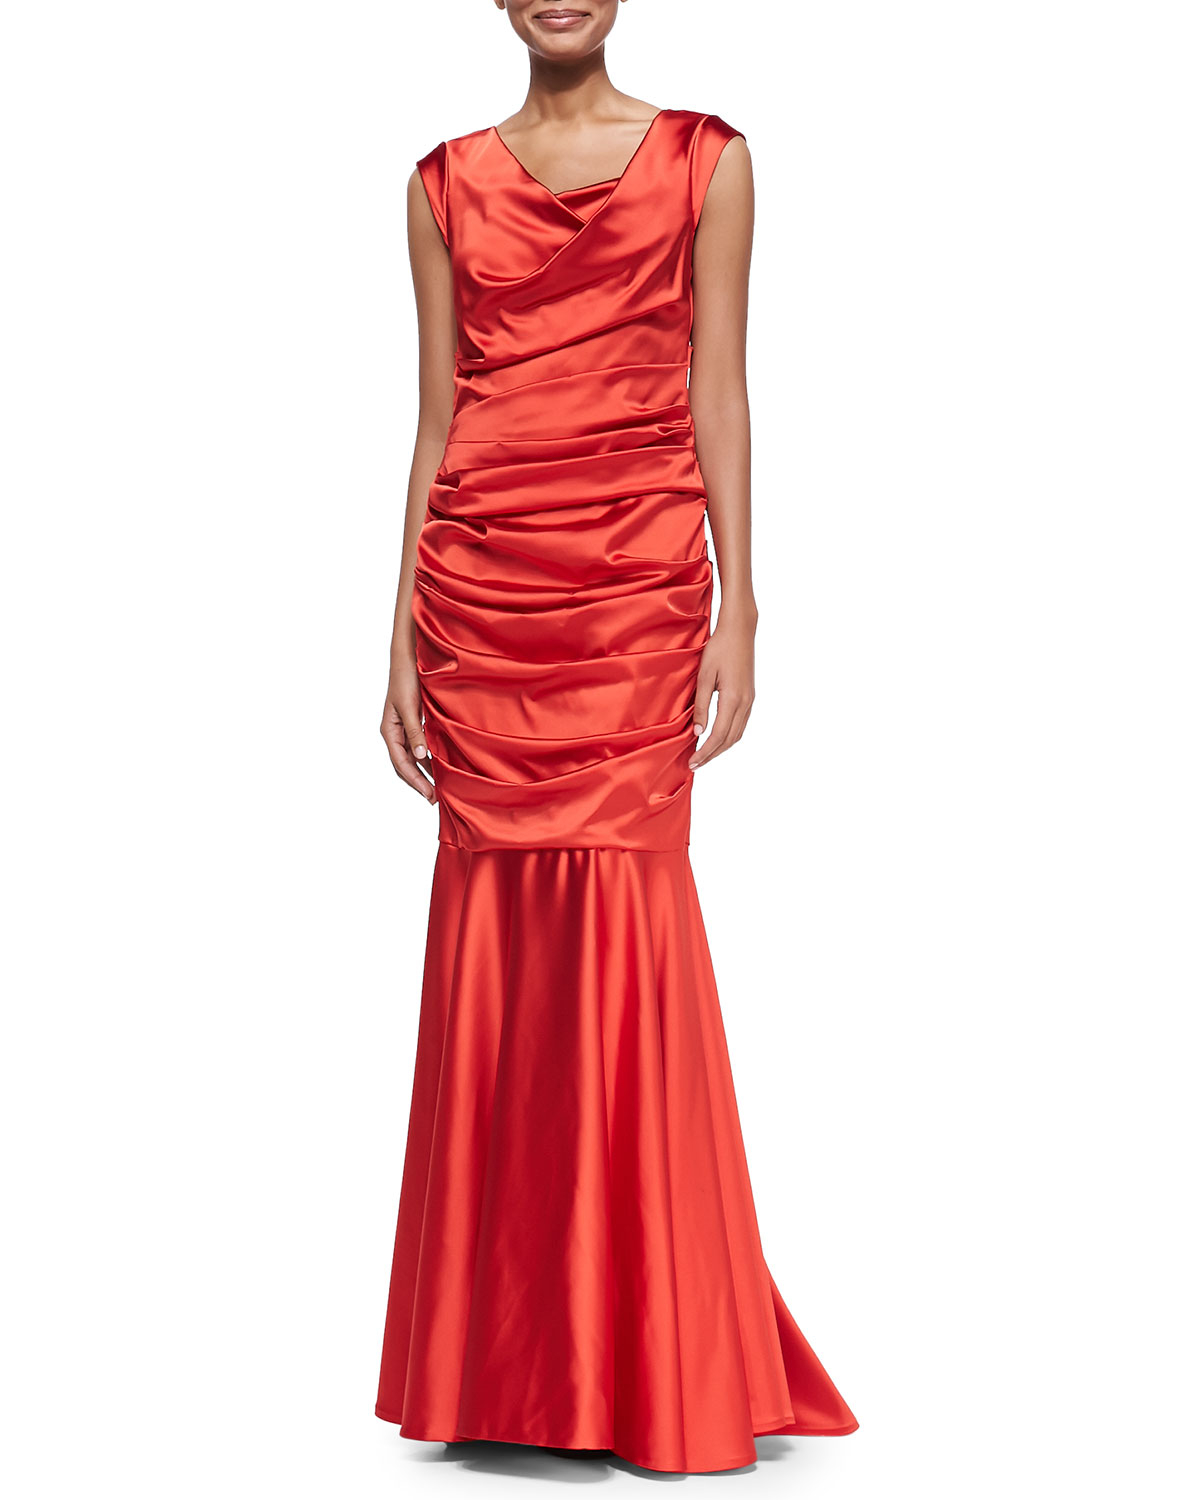 talbot runhof sleeveless ruched mermaid gown in red lyst. Black Bedroom Furniture Sets. Home Design Ideas